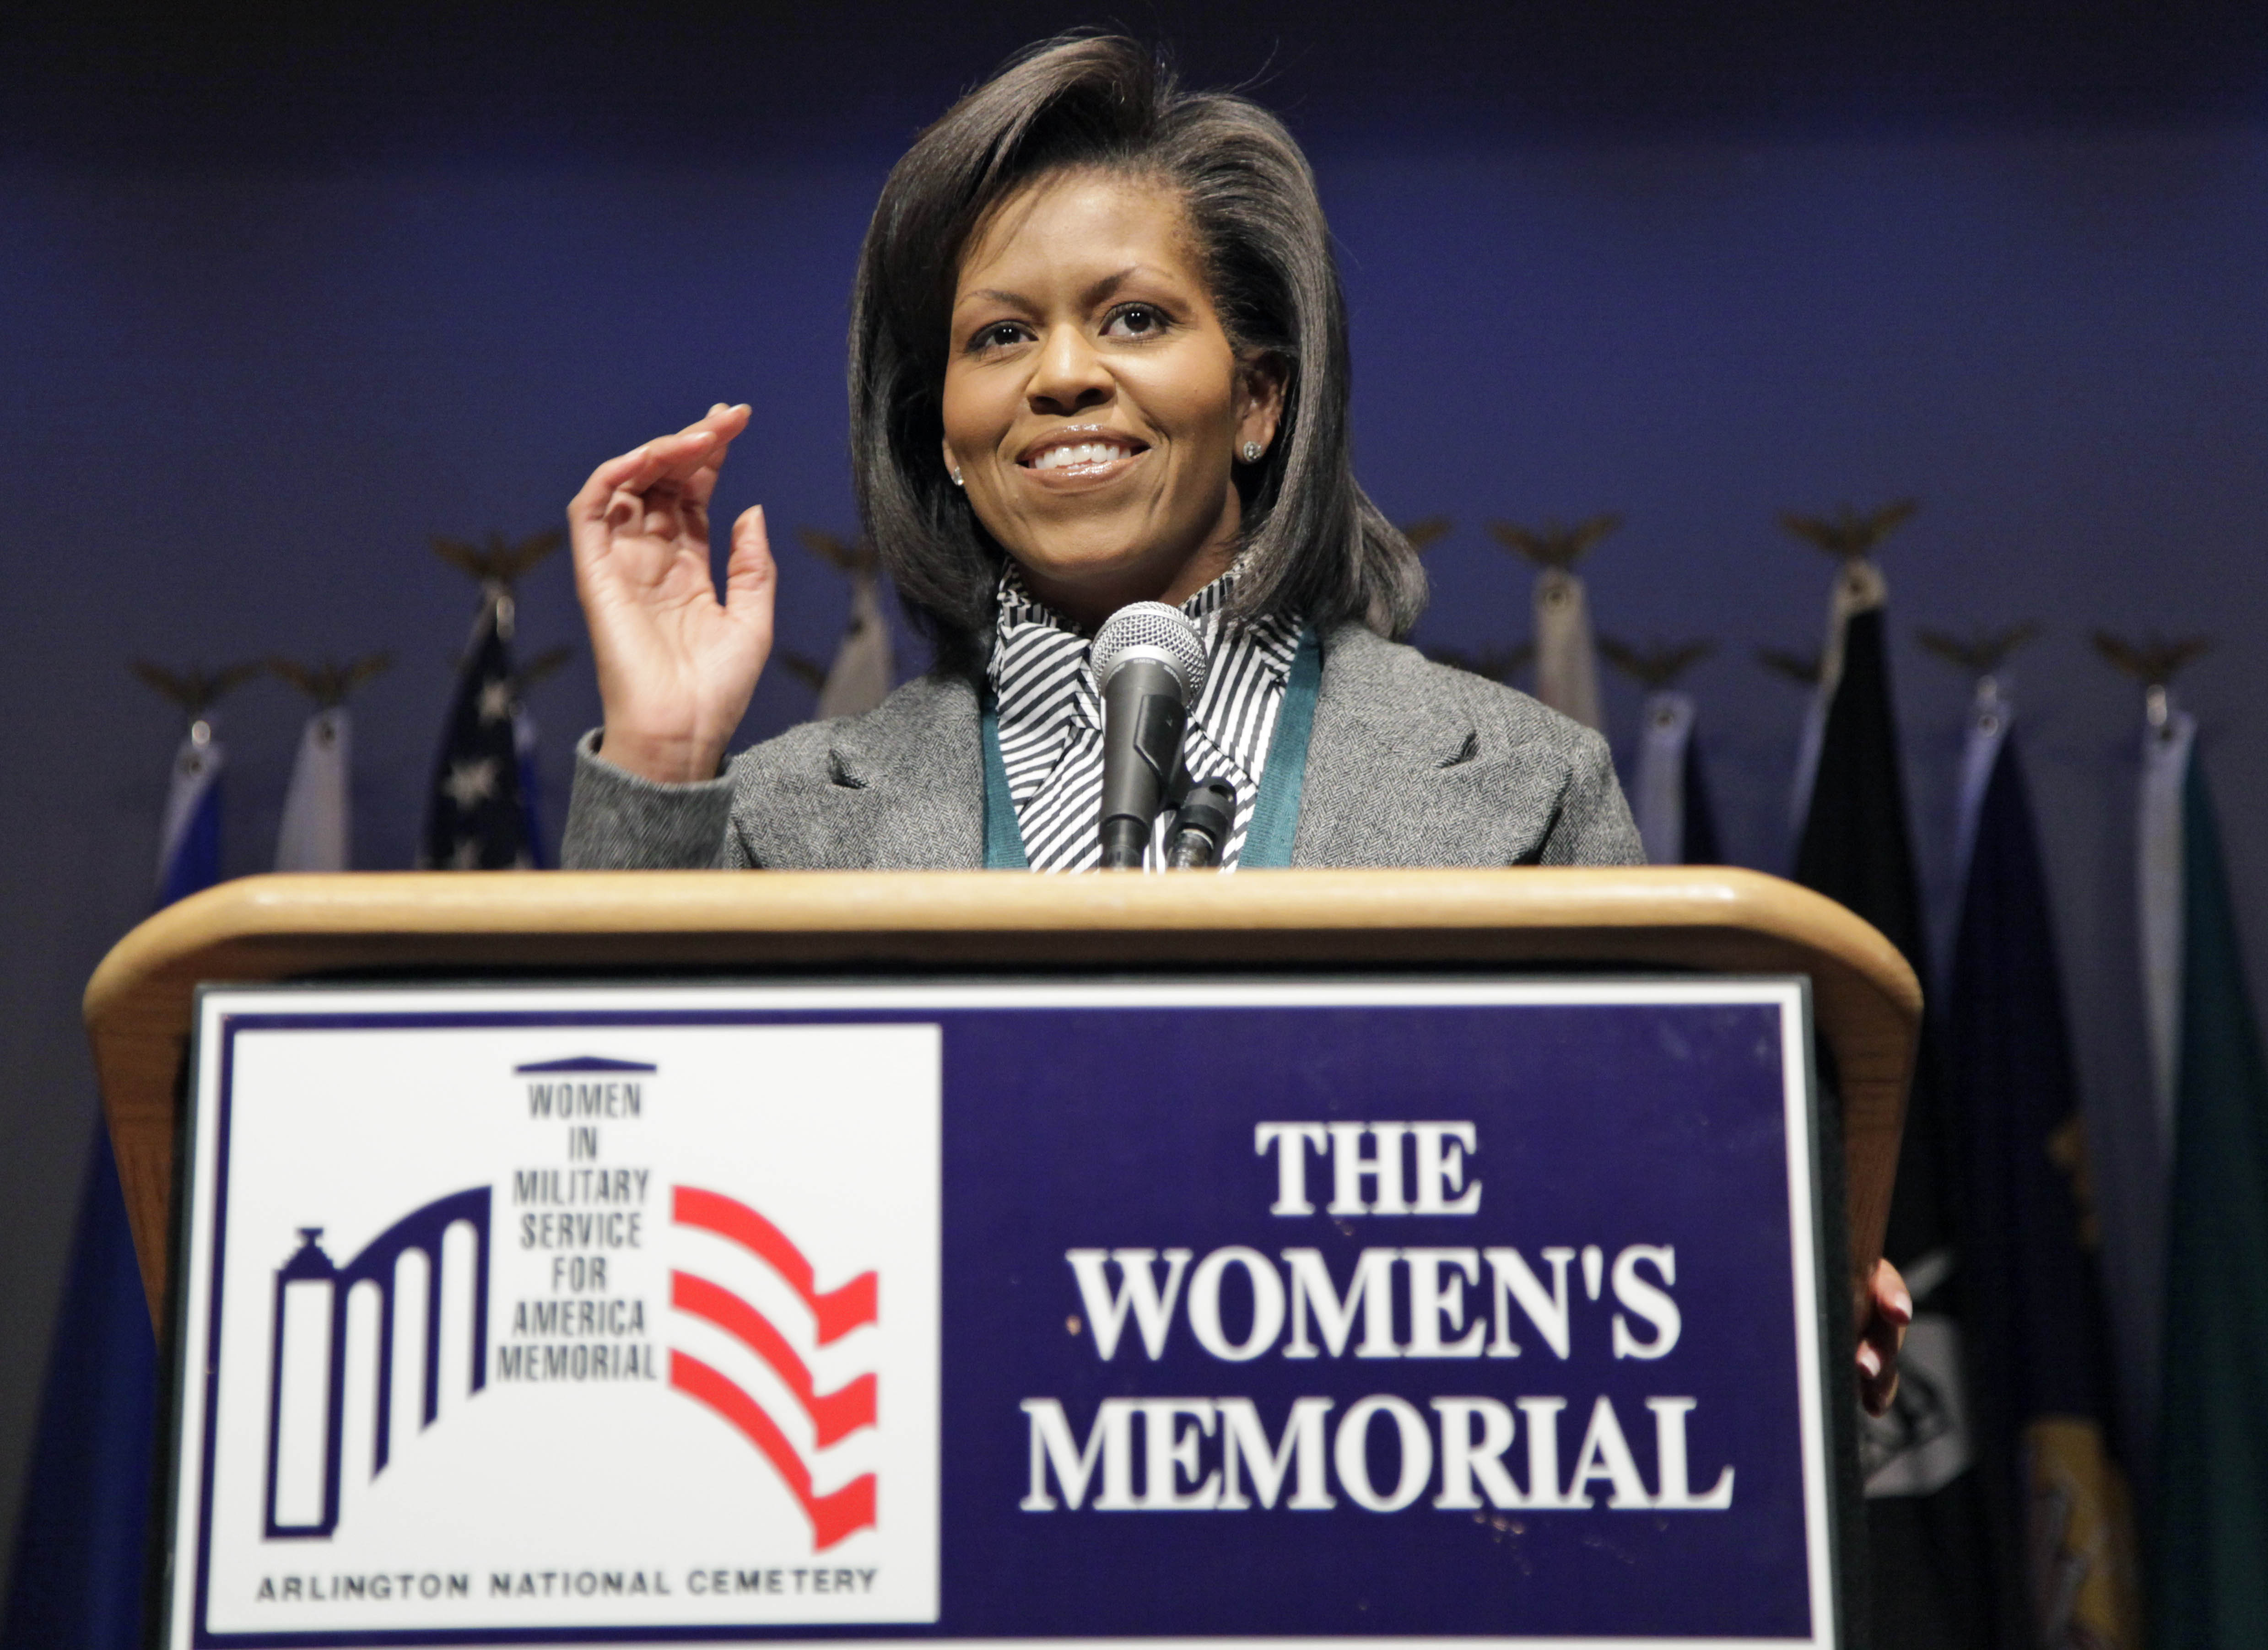 First Lady Michelle Obama speaks at Arlington National Cemetery's Women in Military Service for America Memorial Center, Tuesday, March 3, 2009, in Arlington, Virginia.